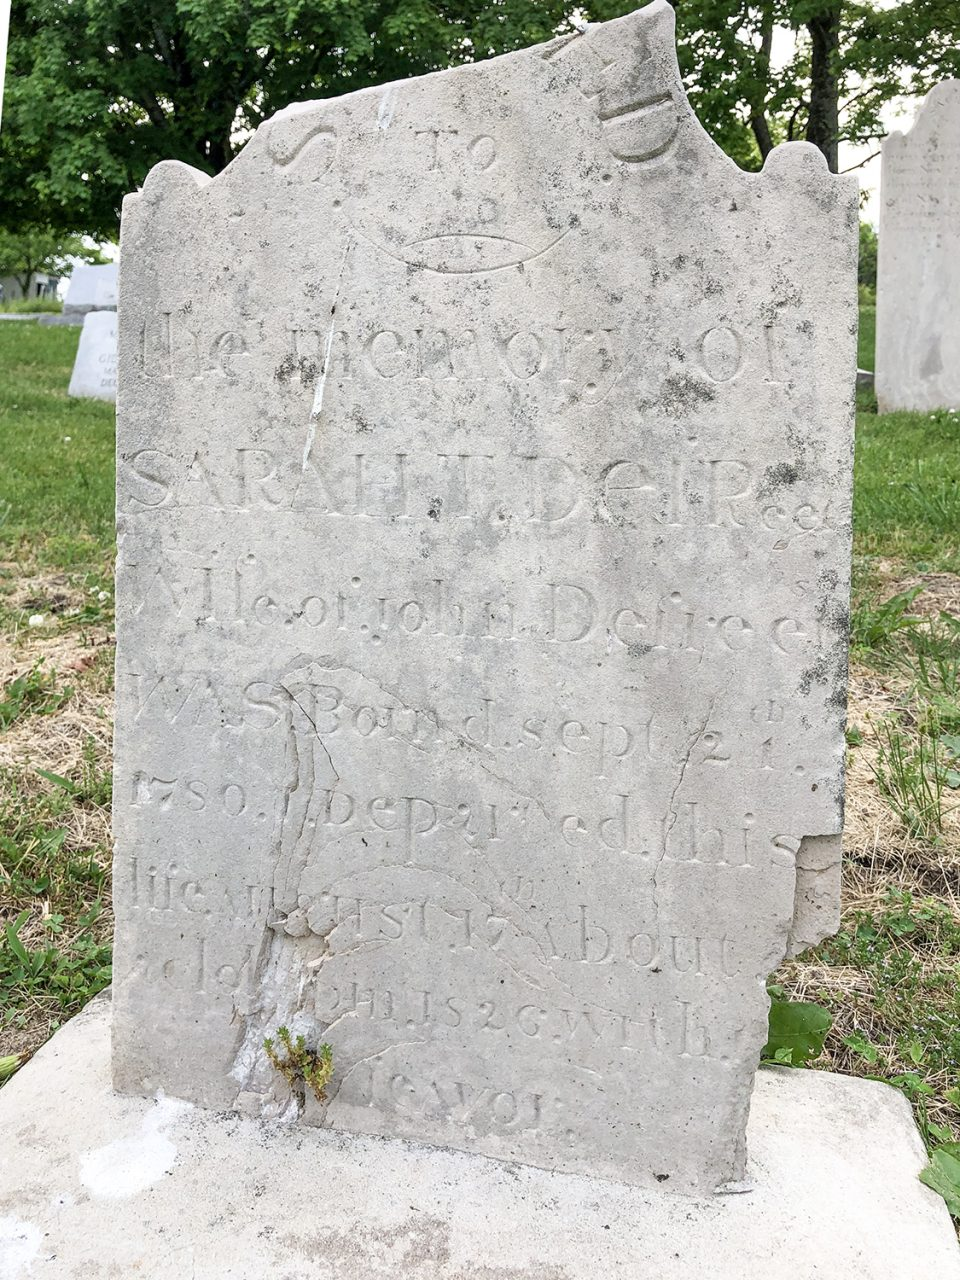 """Photograph of a broken headstone in the Riggs Crossroads Cemetery in Tennessee, that has been remounted in a cement base: """"Sacred to the memory of Sarah T. Defrees, Wife of John Defrees, was born'd Sept. 21th, 1780. Departed this life Aug. 17th about [time obscured] o'clock p.m. 1826 with a feavor"""""""